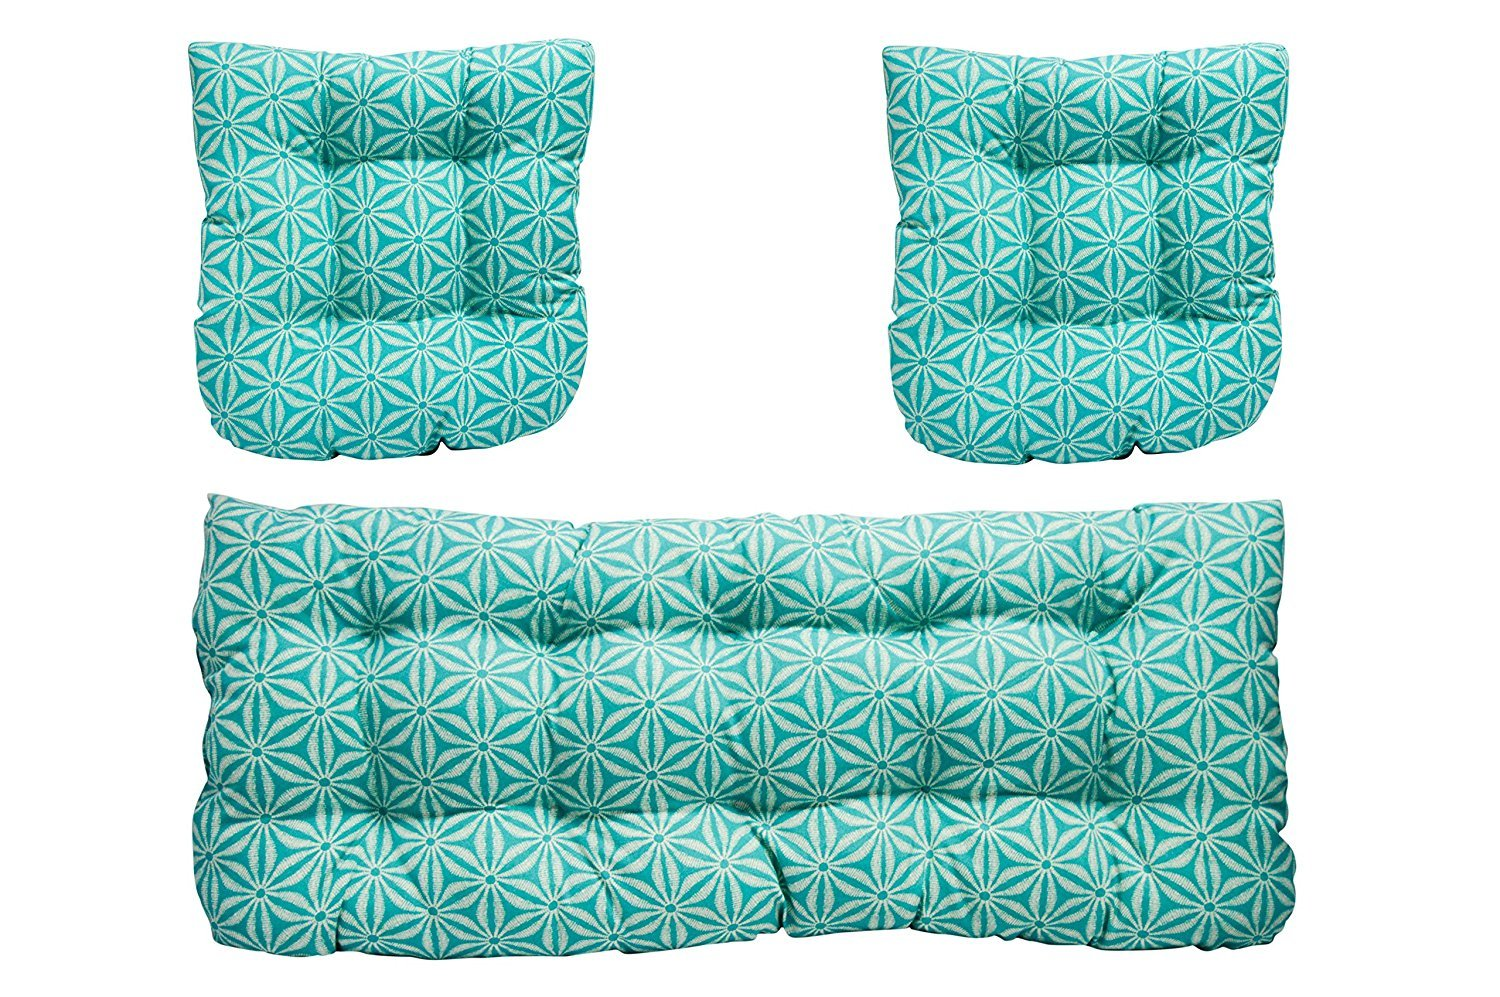 3 Piece Wicker Cushion Set - Indoor / Outdoor Tommy Bahama - Star Batik Caribe Pattern Fabric Cushion for Wicker Loveseat Settee & 2 Matching Chair Cushions